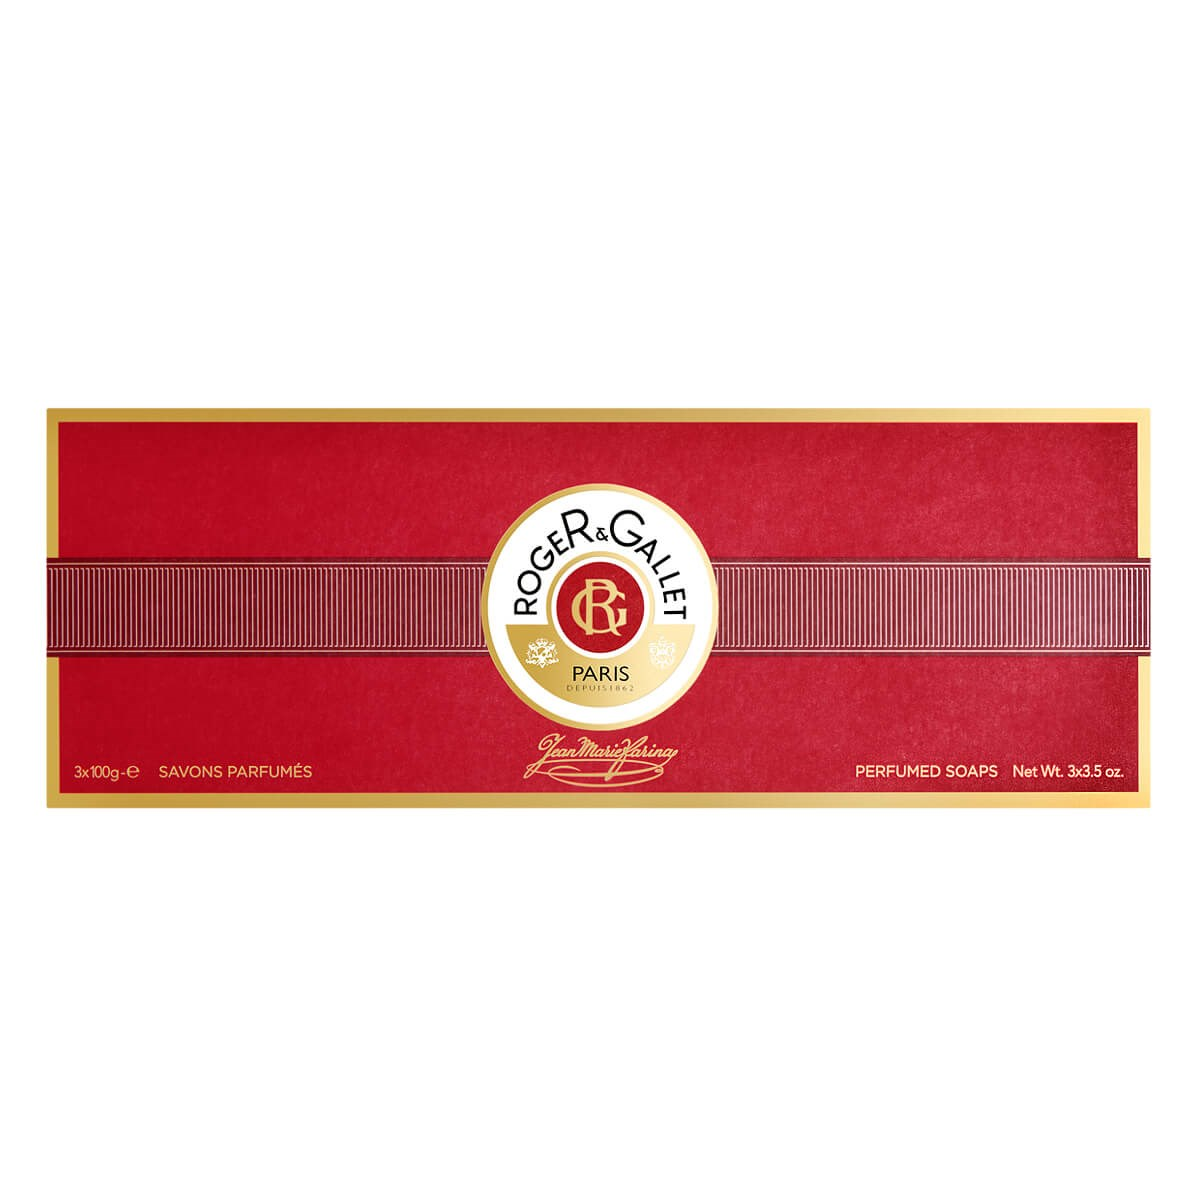 Roger & Gallet Jean Marie Farina Perfumed Soaps